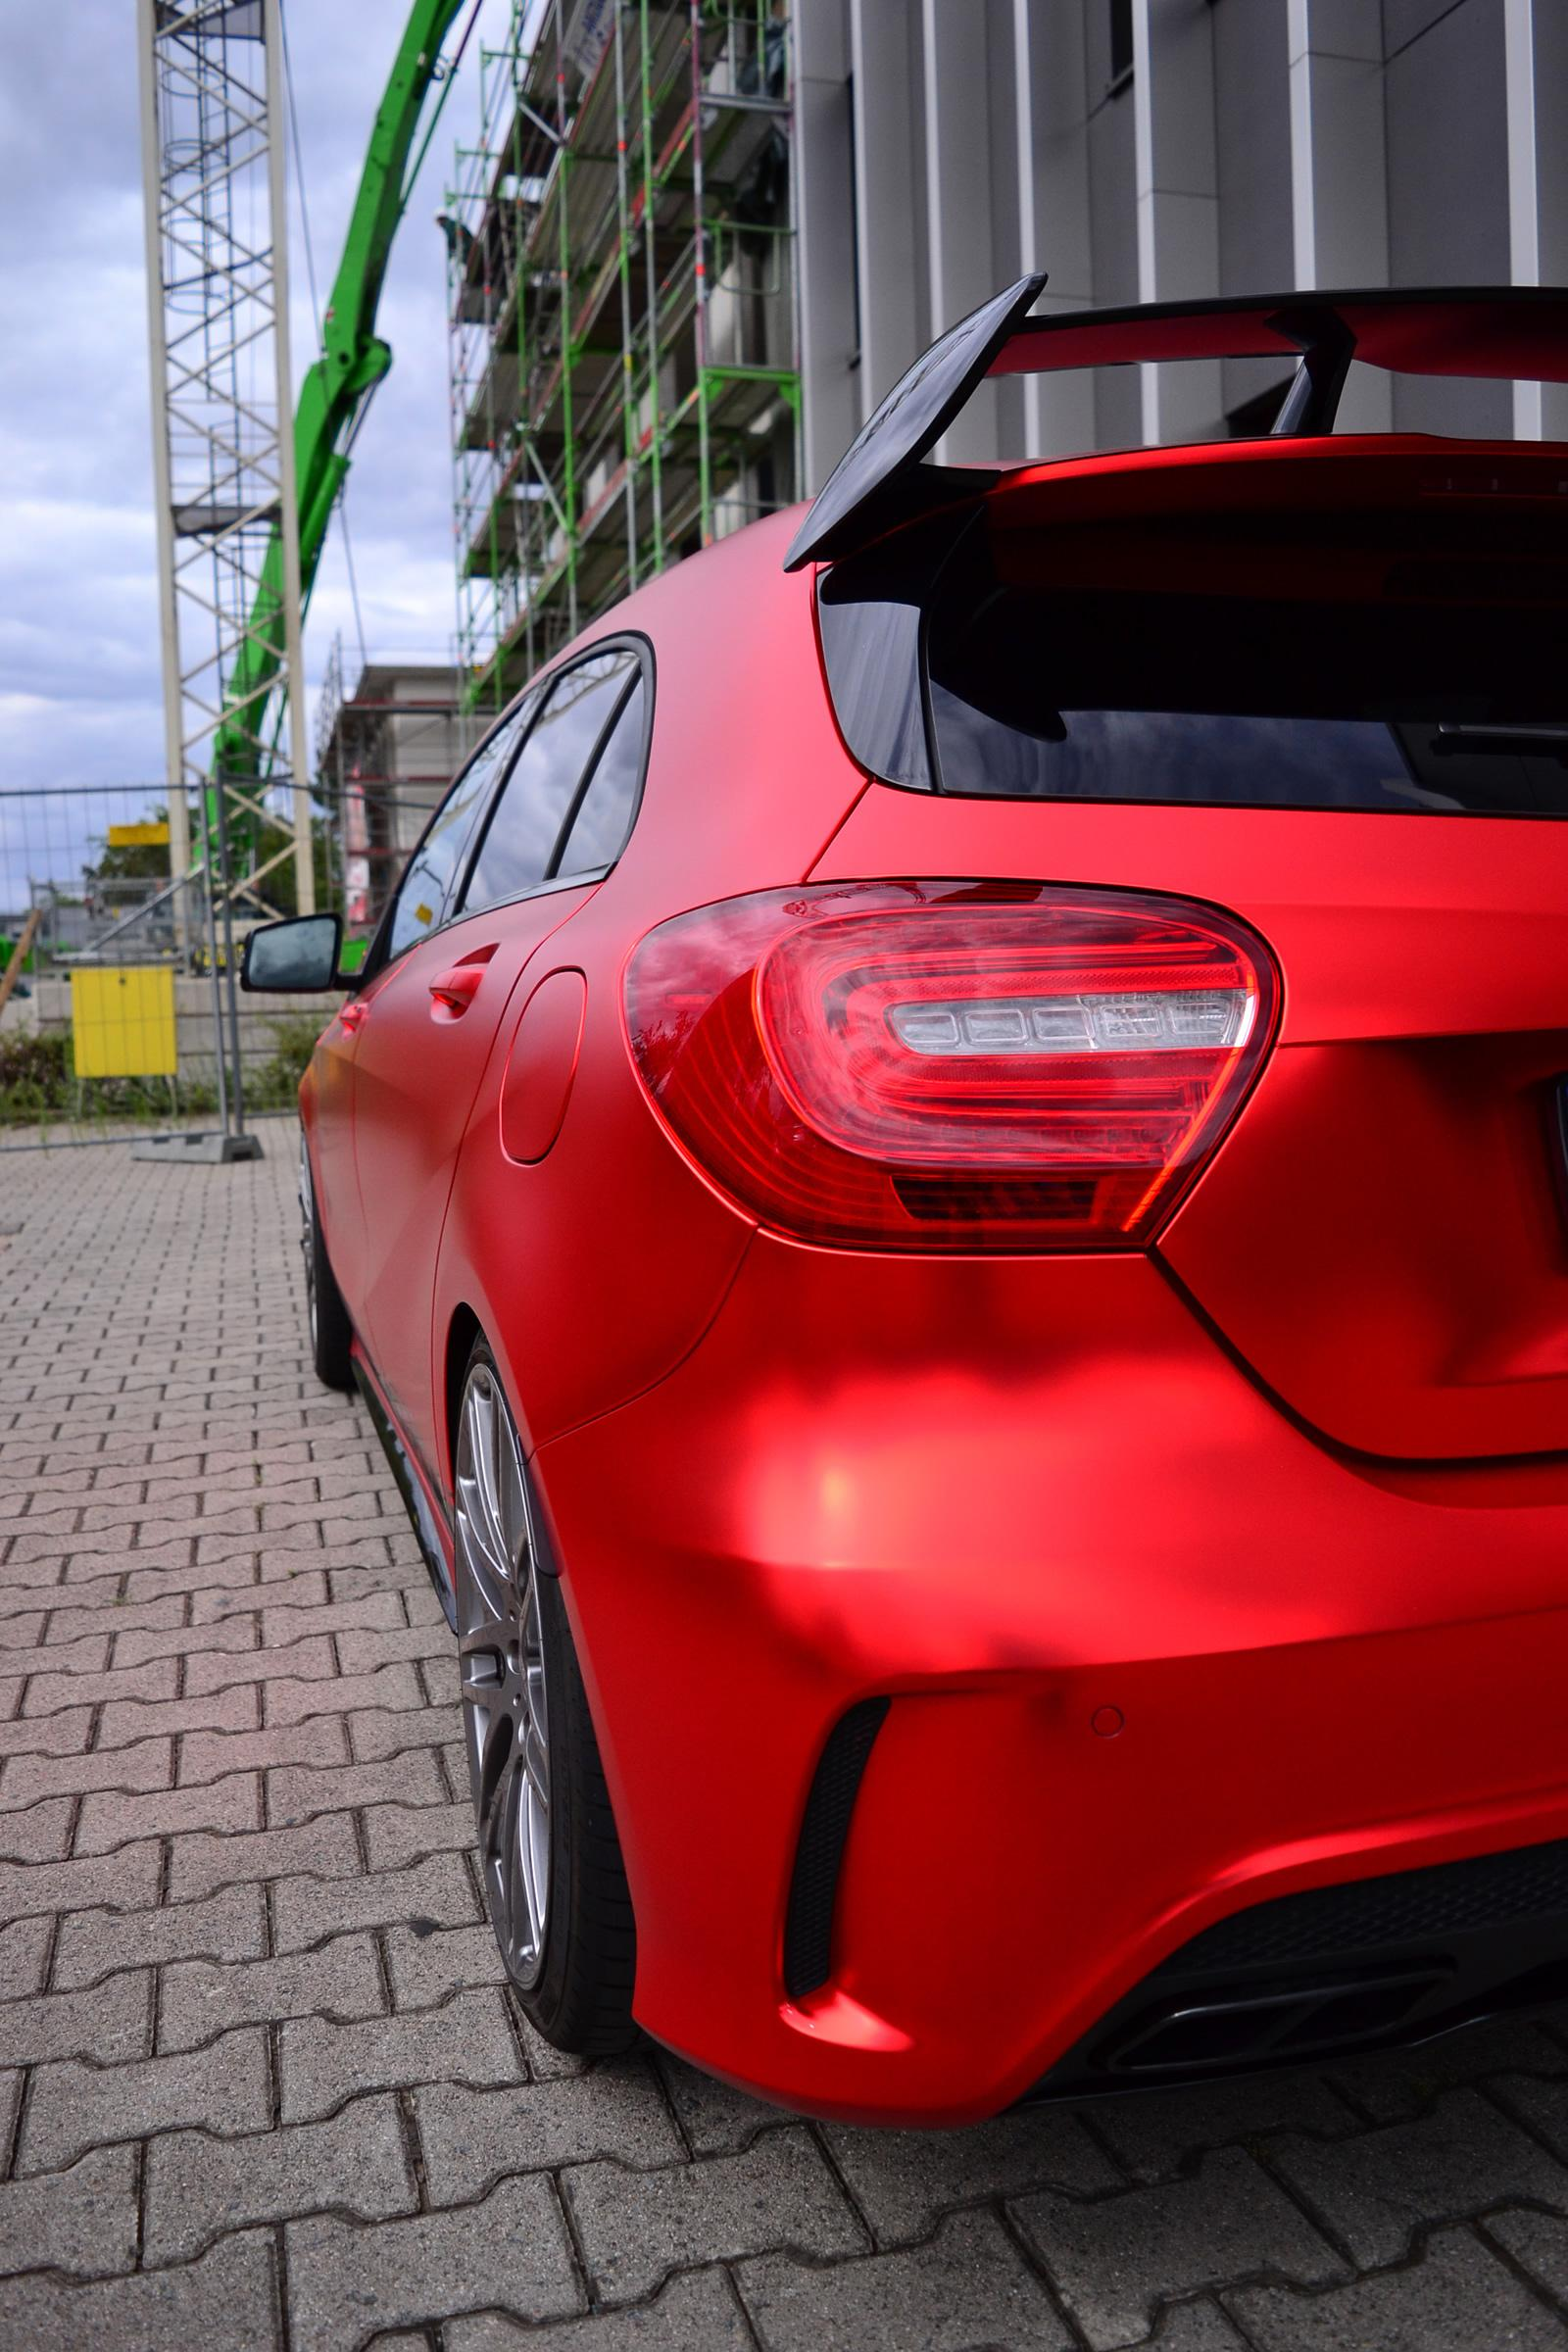 MercedesBenz A45 AMG Gets Wrapped in Wonderful Red Matte